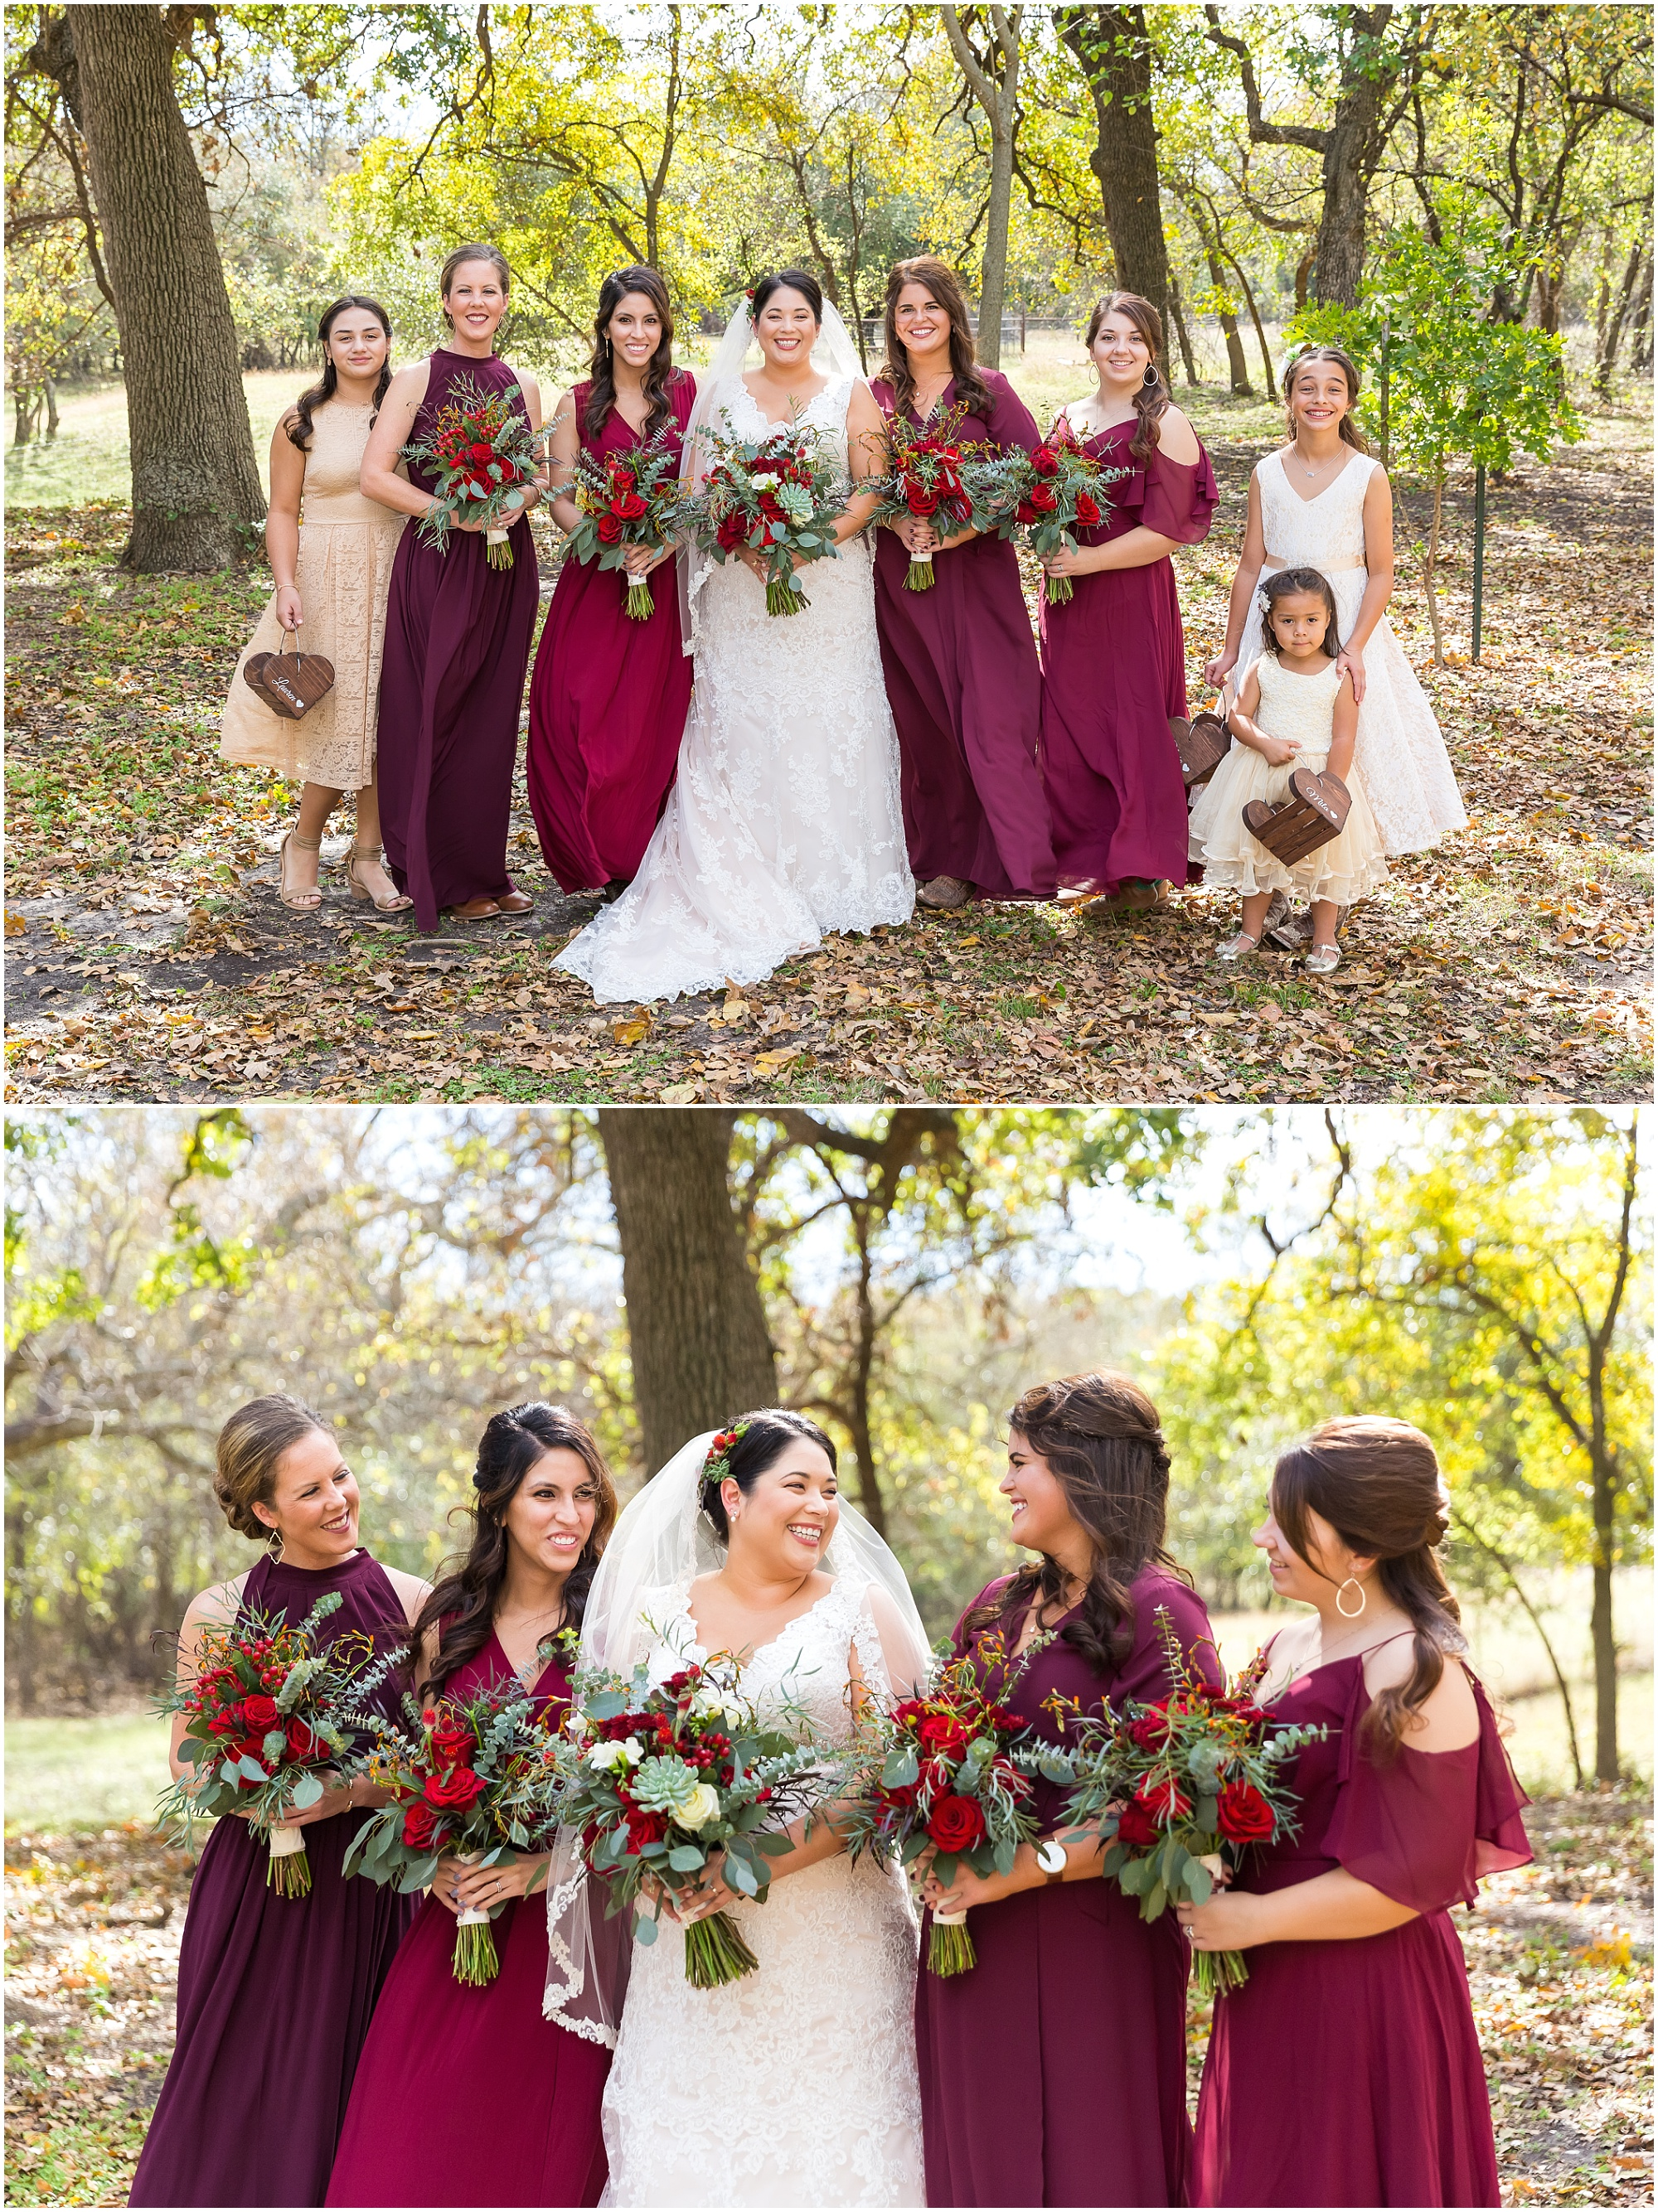 Bridal party in burgundy dresses - fall wedding at Dove Creek Ranch in Dublin, Texas - Jason & Melaina Photography - www.jasonandmelaina.com